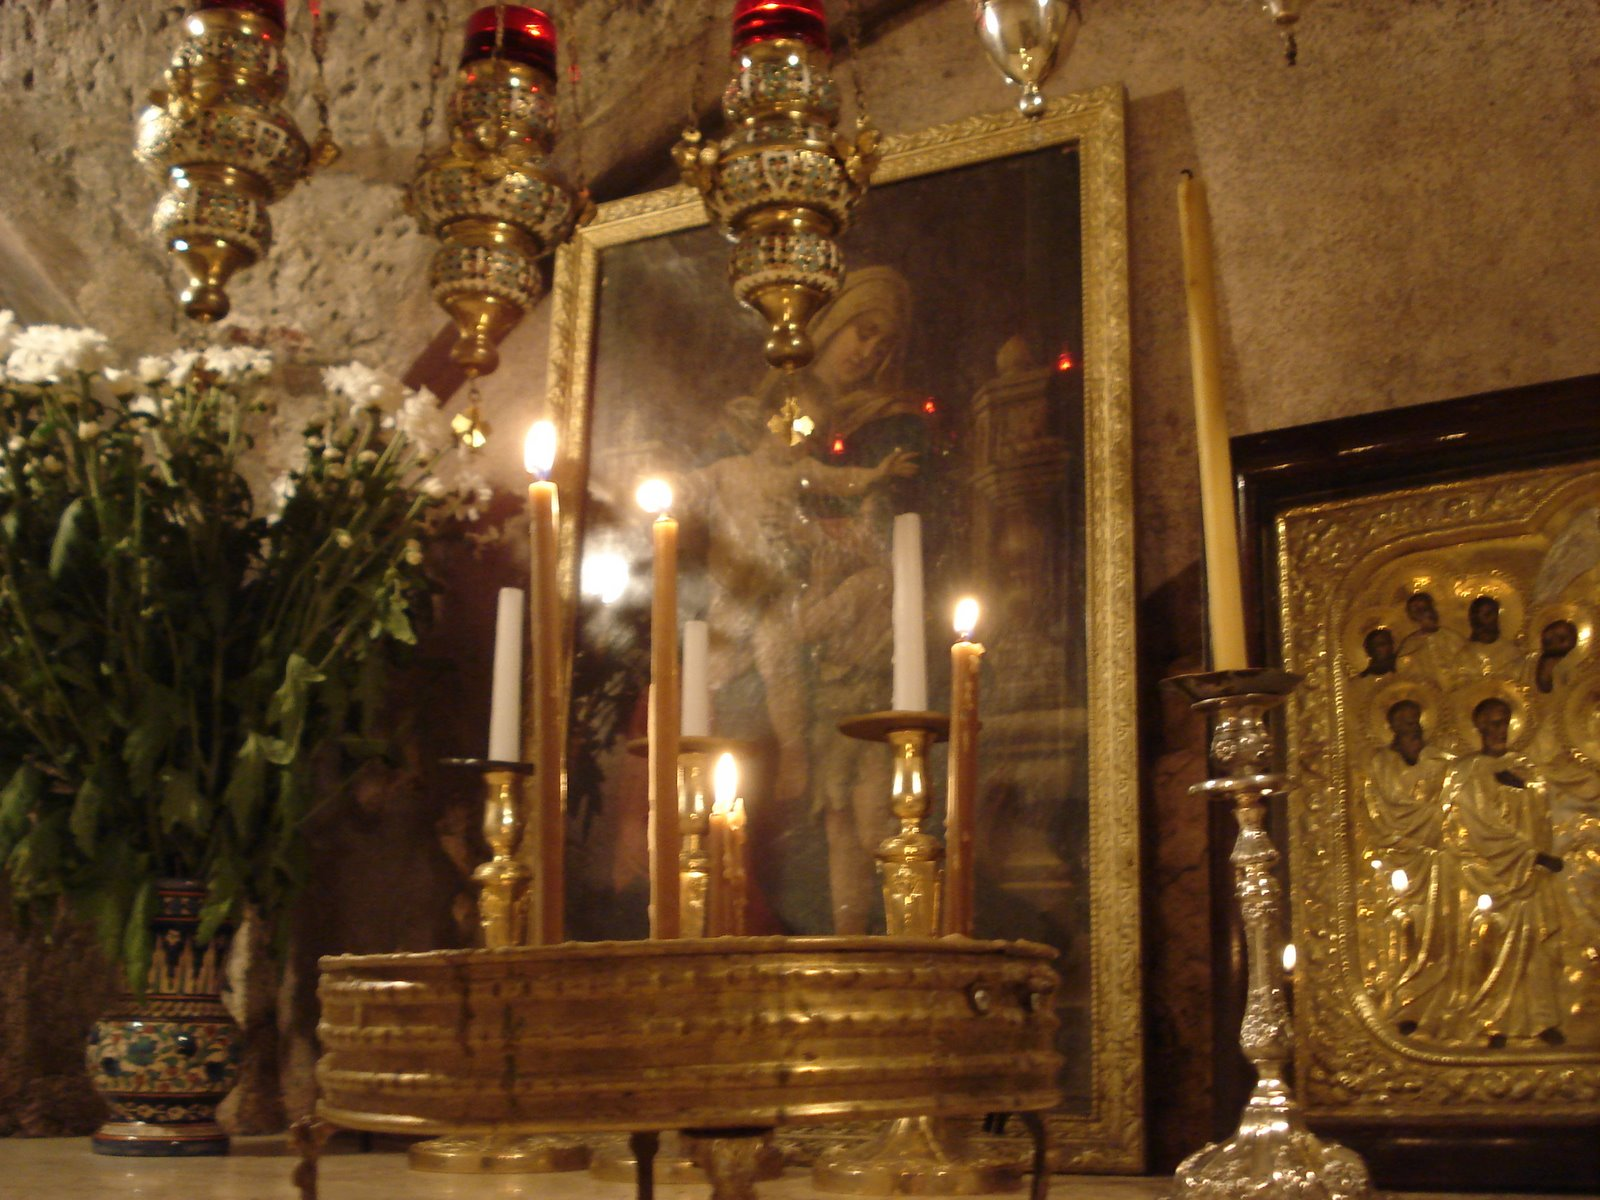 Tomb of the Virgin Mary, Jerusalem, Israel, Icon altar and candles